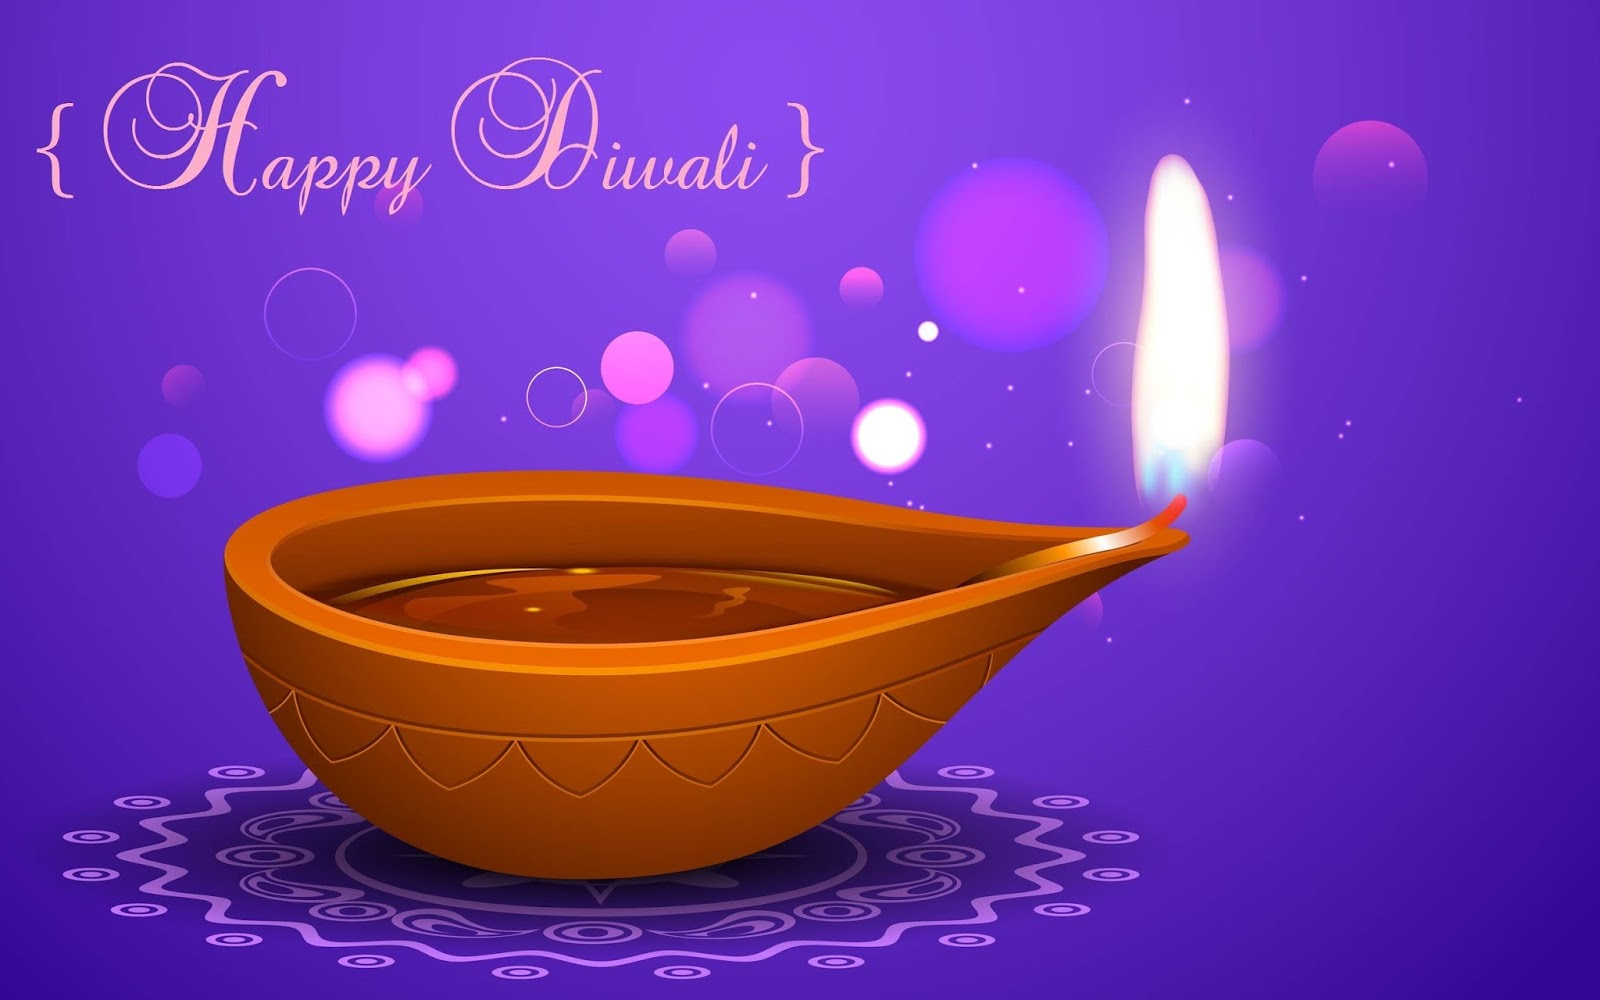 happy diwali images photos wishes sms also happy narak chaturdashi 2015happy dhanteras 2015happy diwali essay in englishhappy new year 2015 whatsapp status